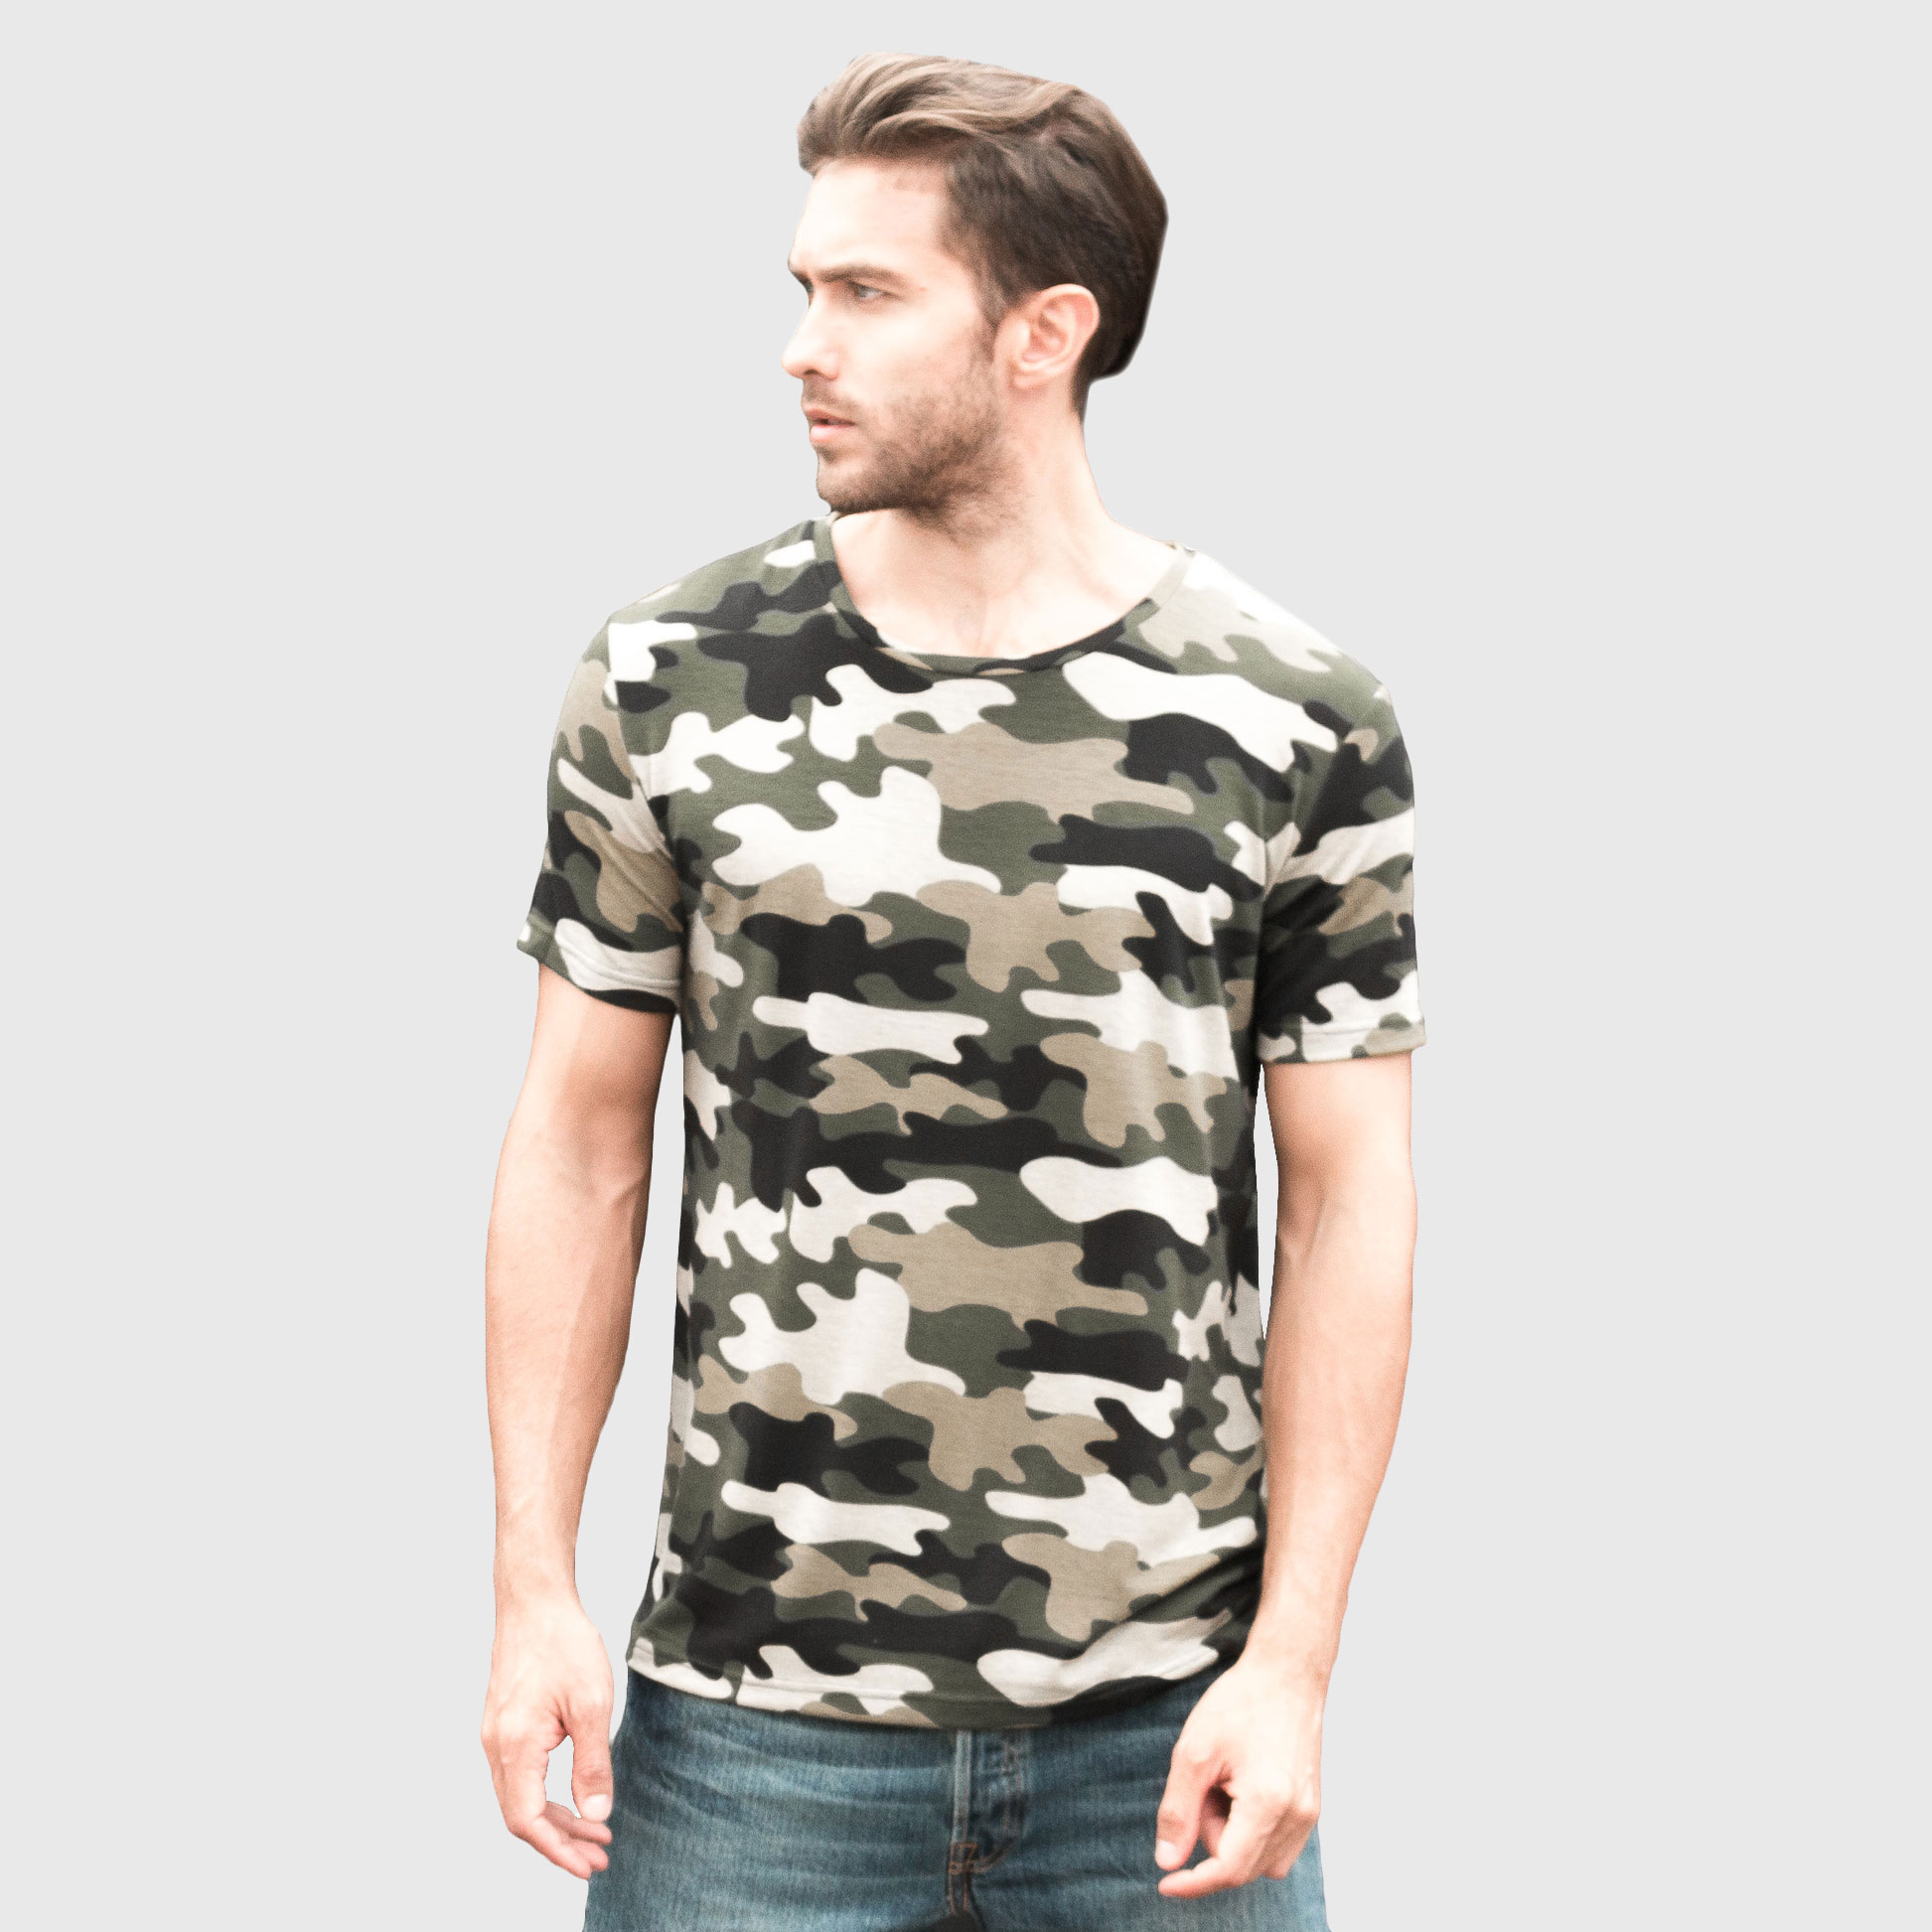 Camouflage T-Shirt Männer Armee Military T-shirt Fitness Top Tees - Herrenbekleidung